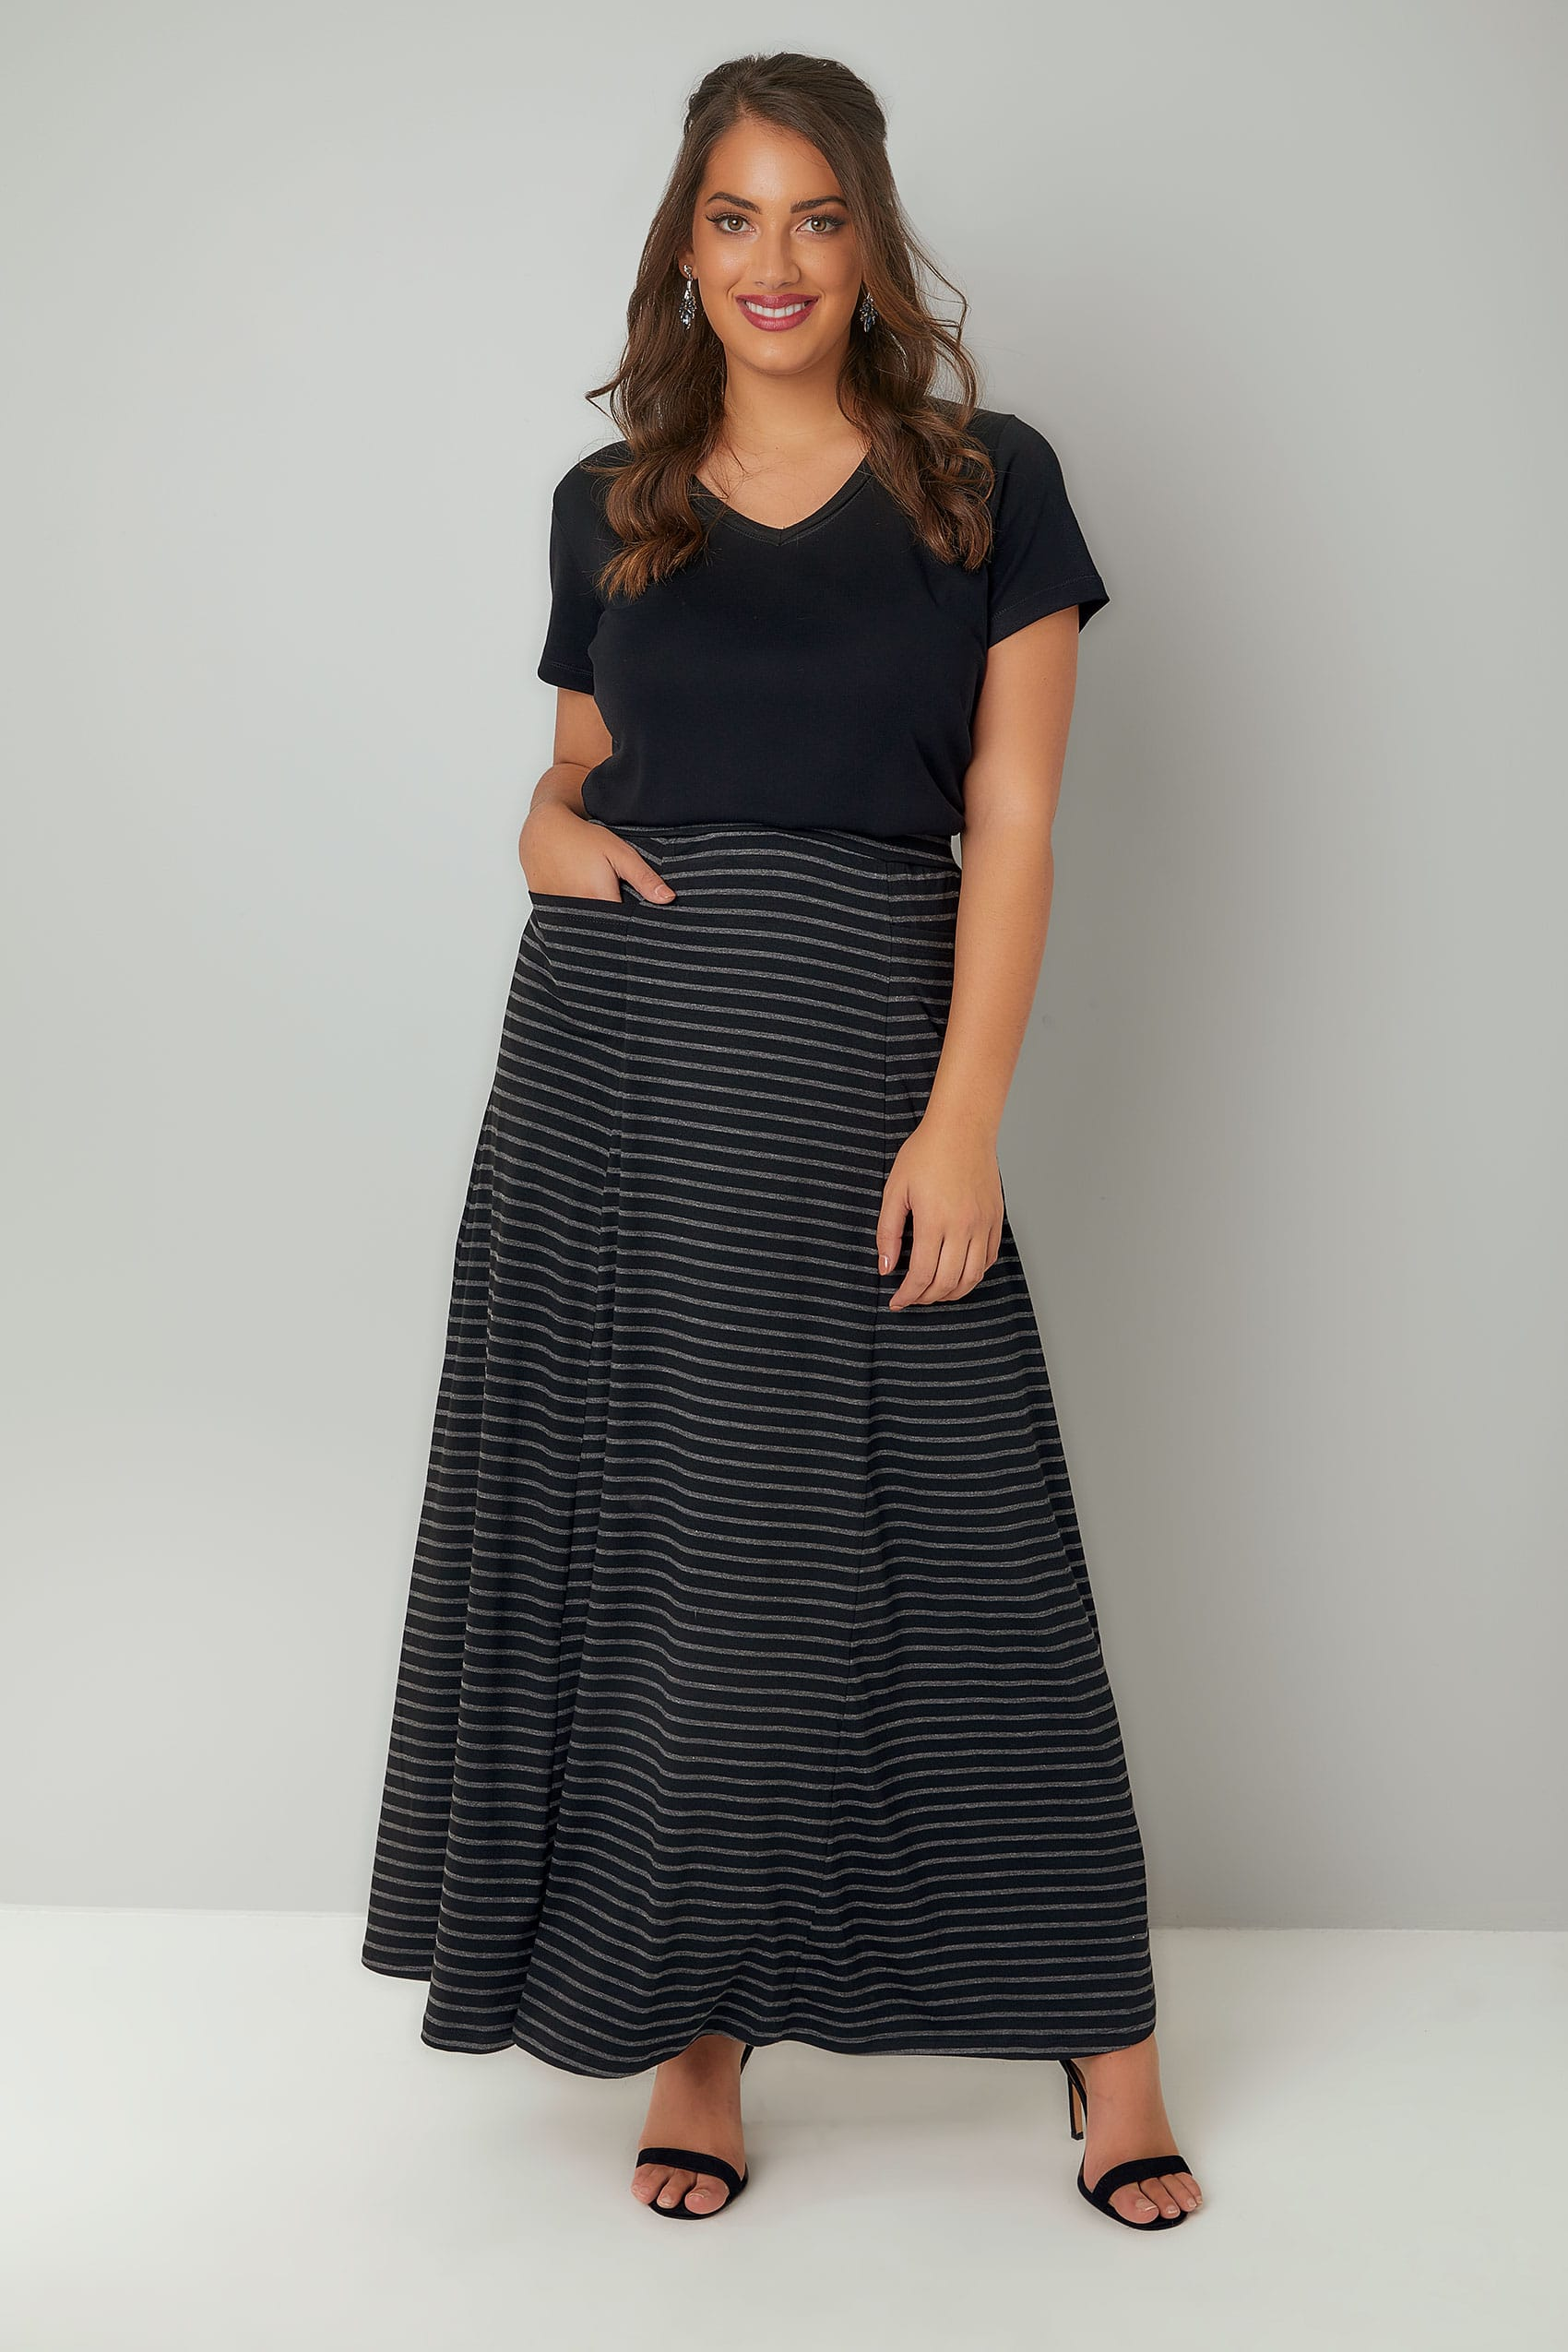 Ladies Womens Grey Side Stripe Jersey Maxi Skirt Causal Wear Sizes 8-20